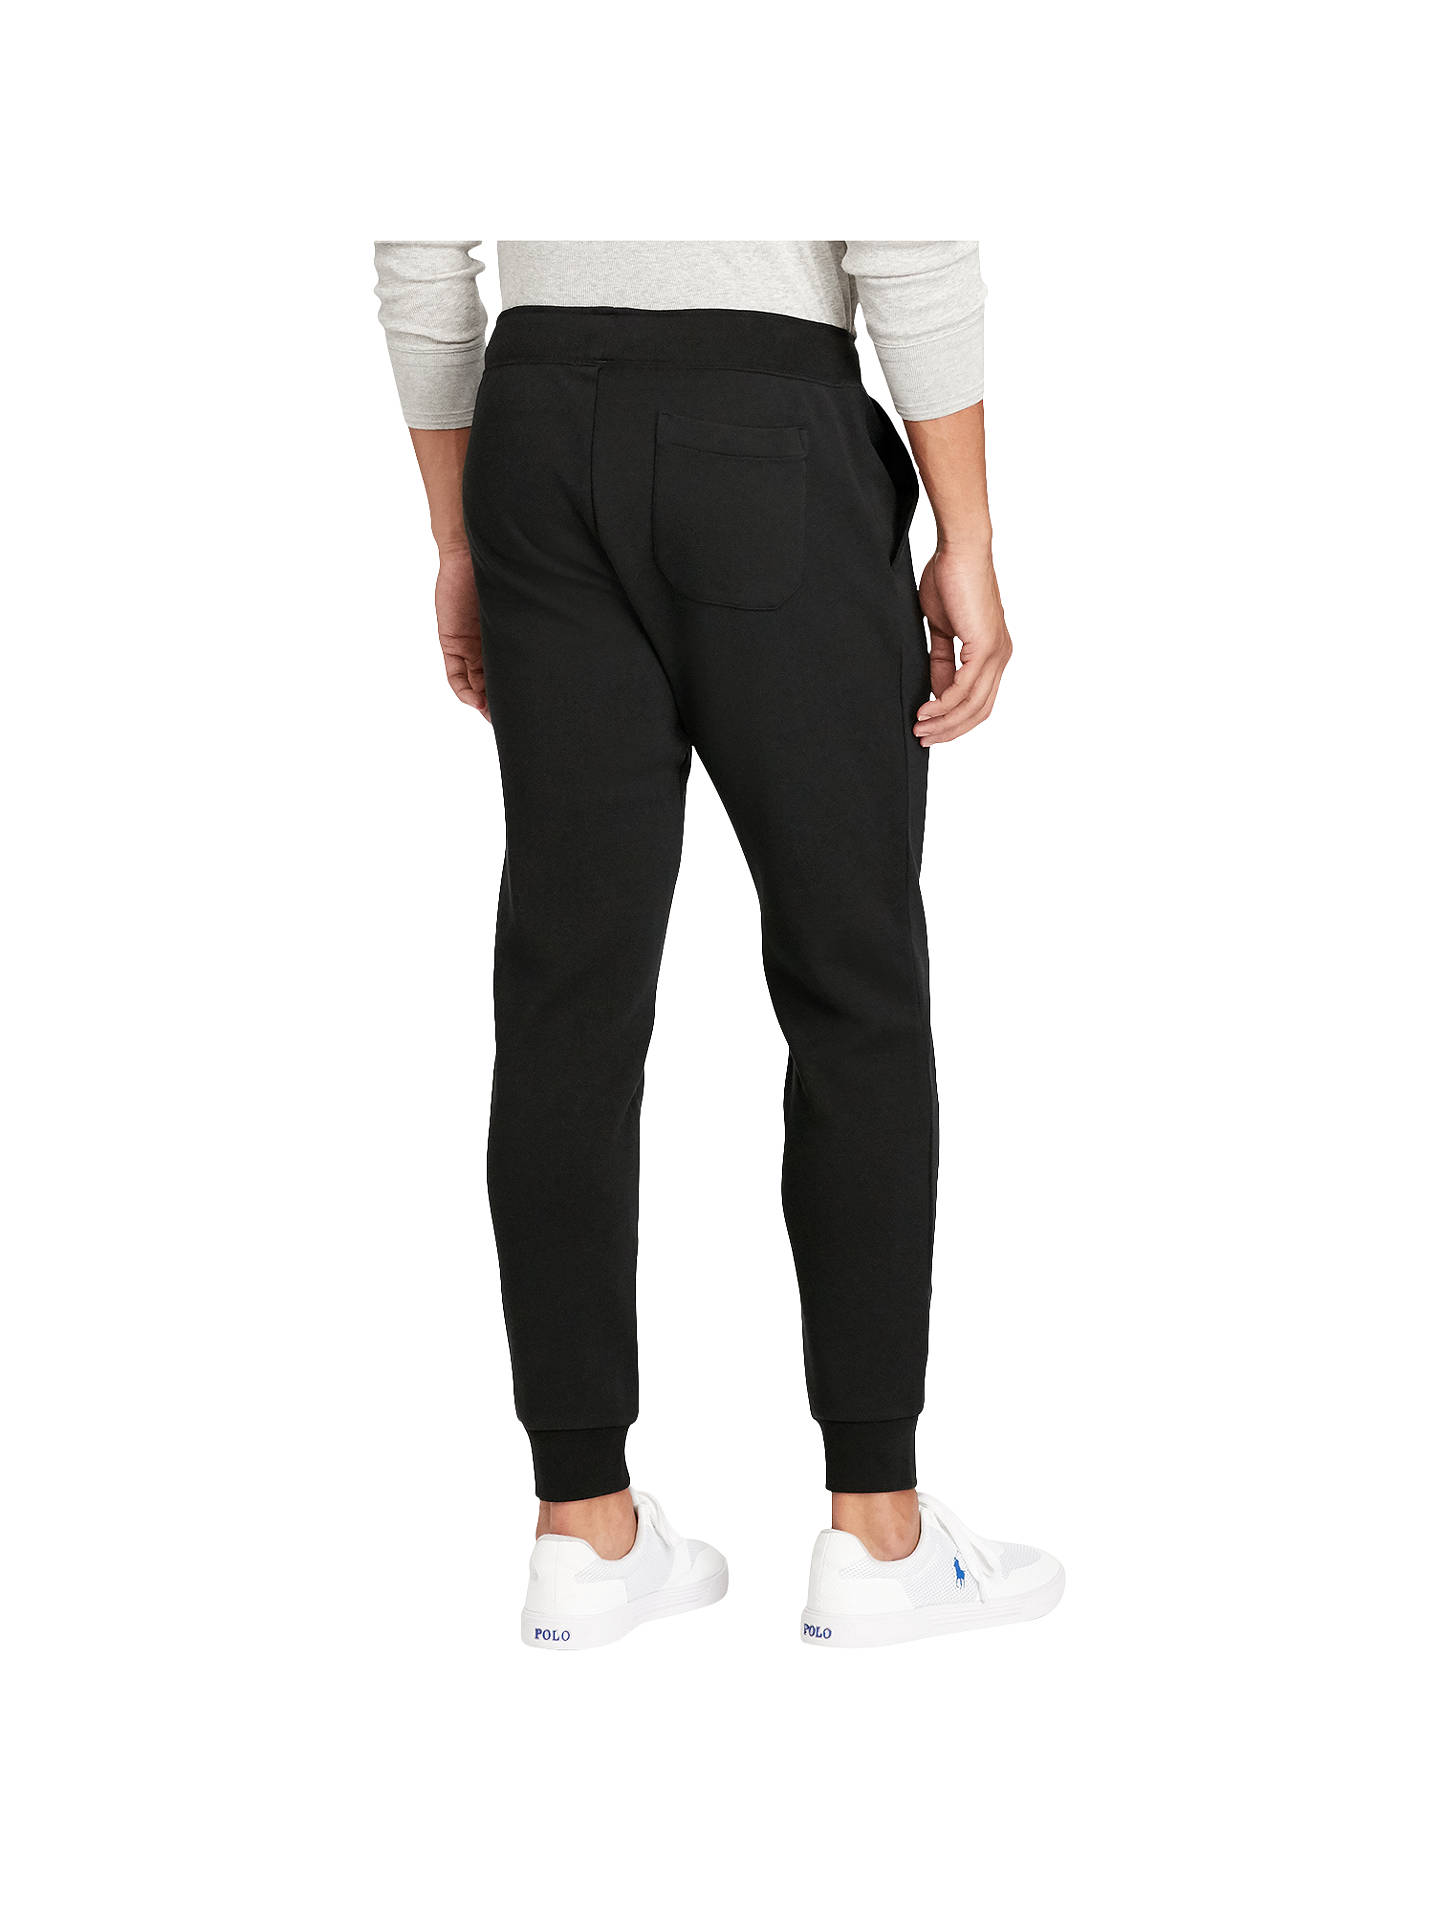 BuyPolo Ralph Lauren Double-Knit Jogging Bottoms, Polo Black, S Online at johnlewis.com